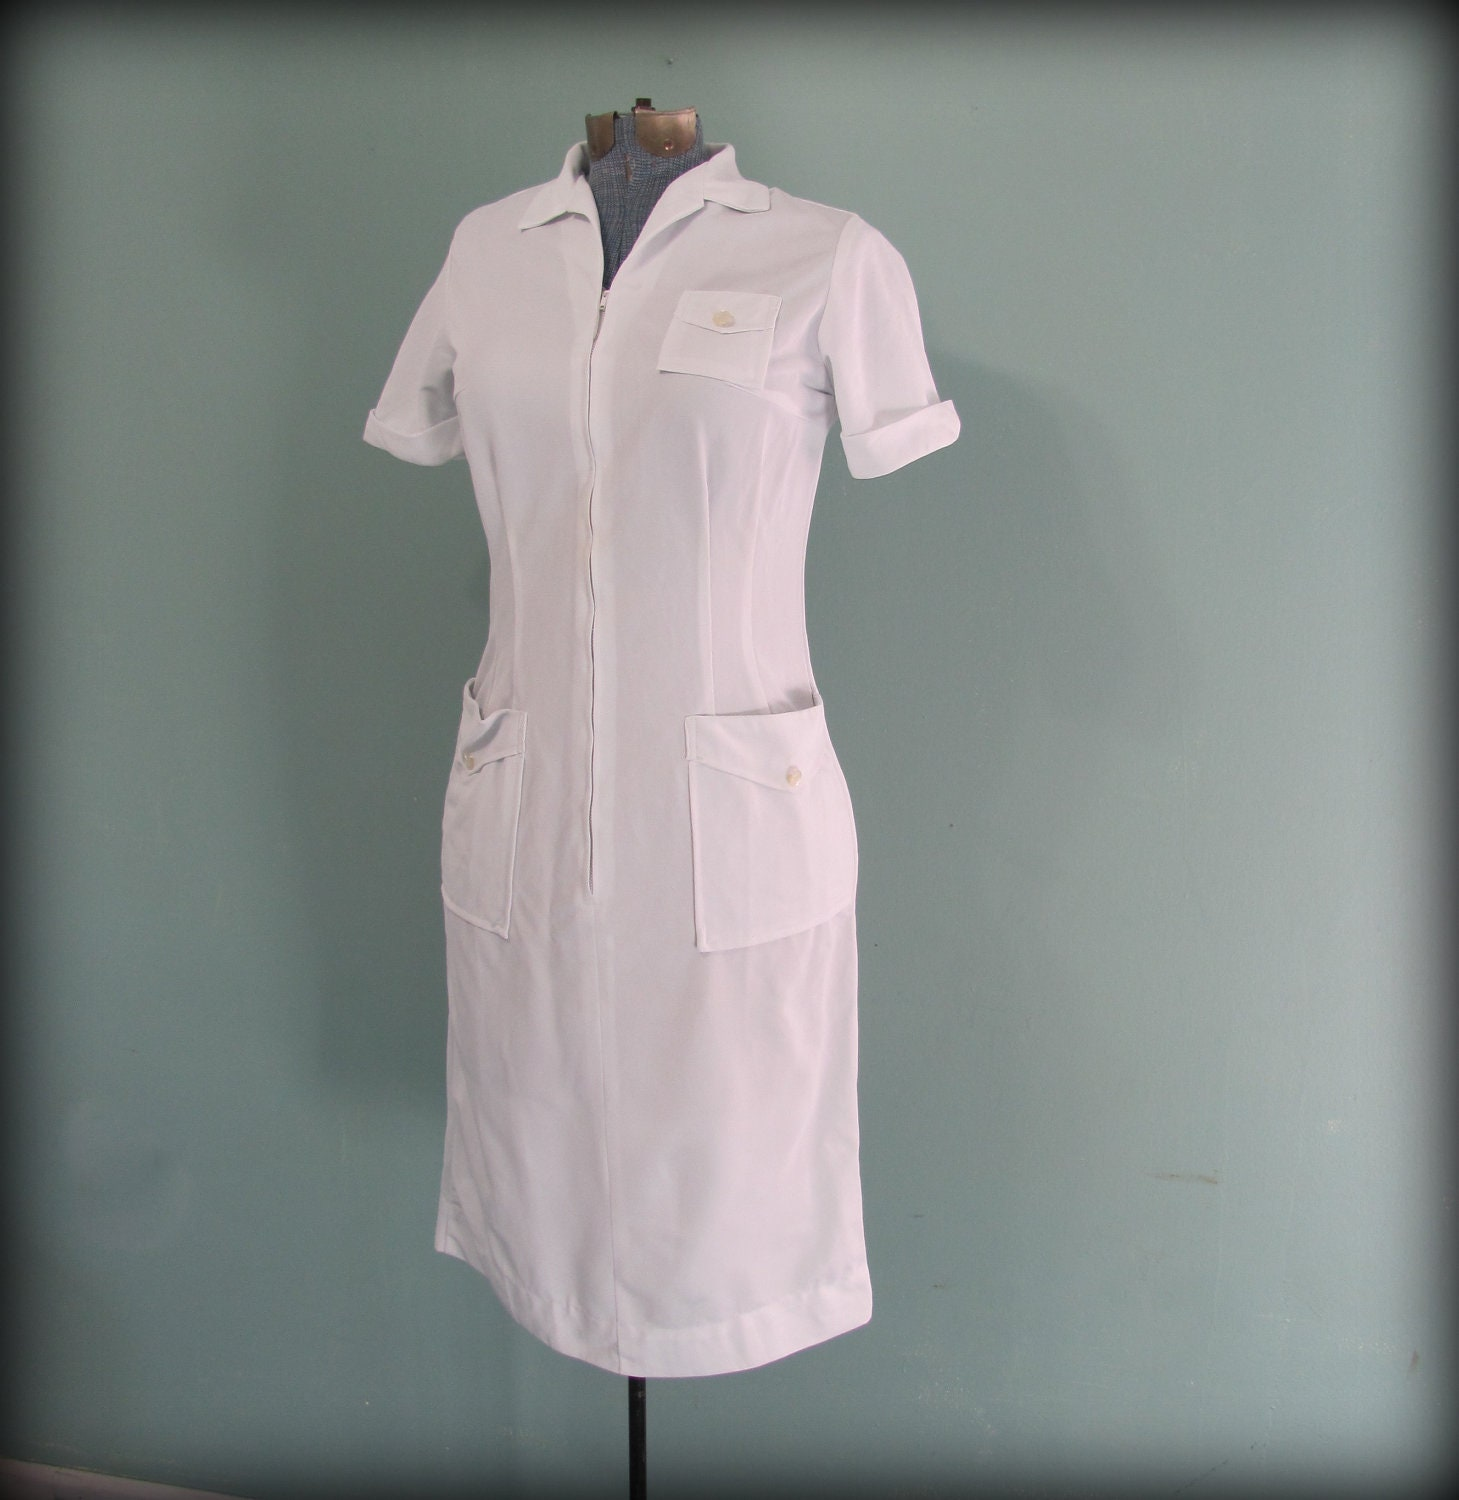 White Nurse Uniform Dress 60